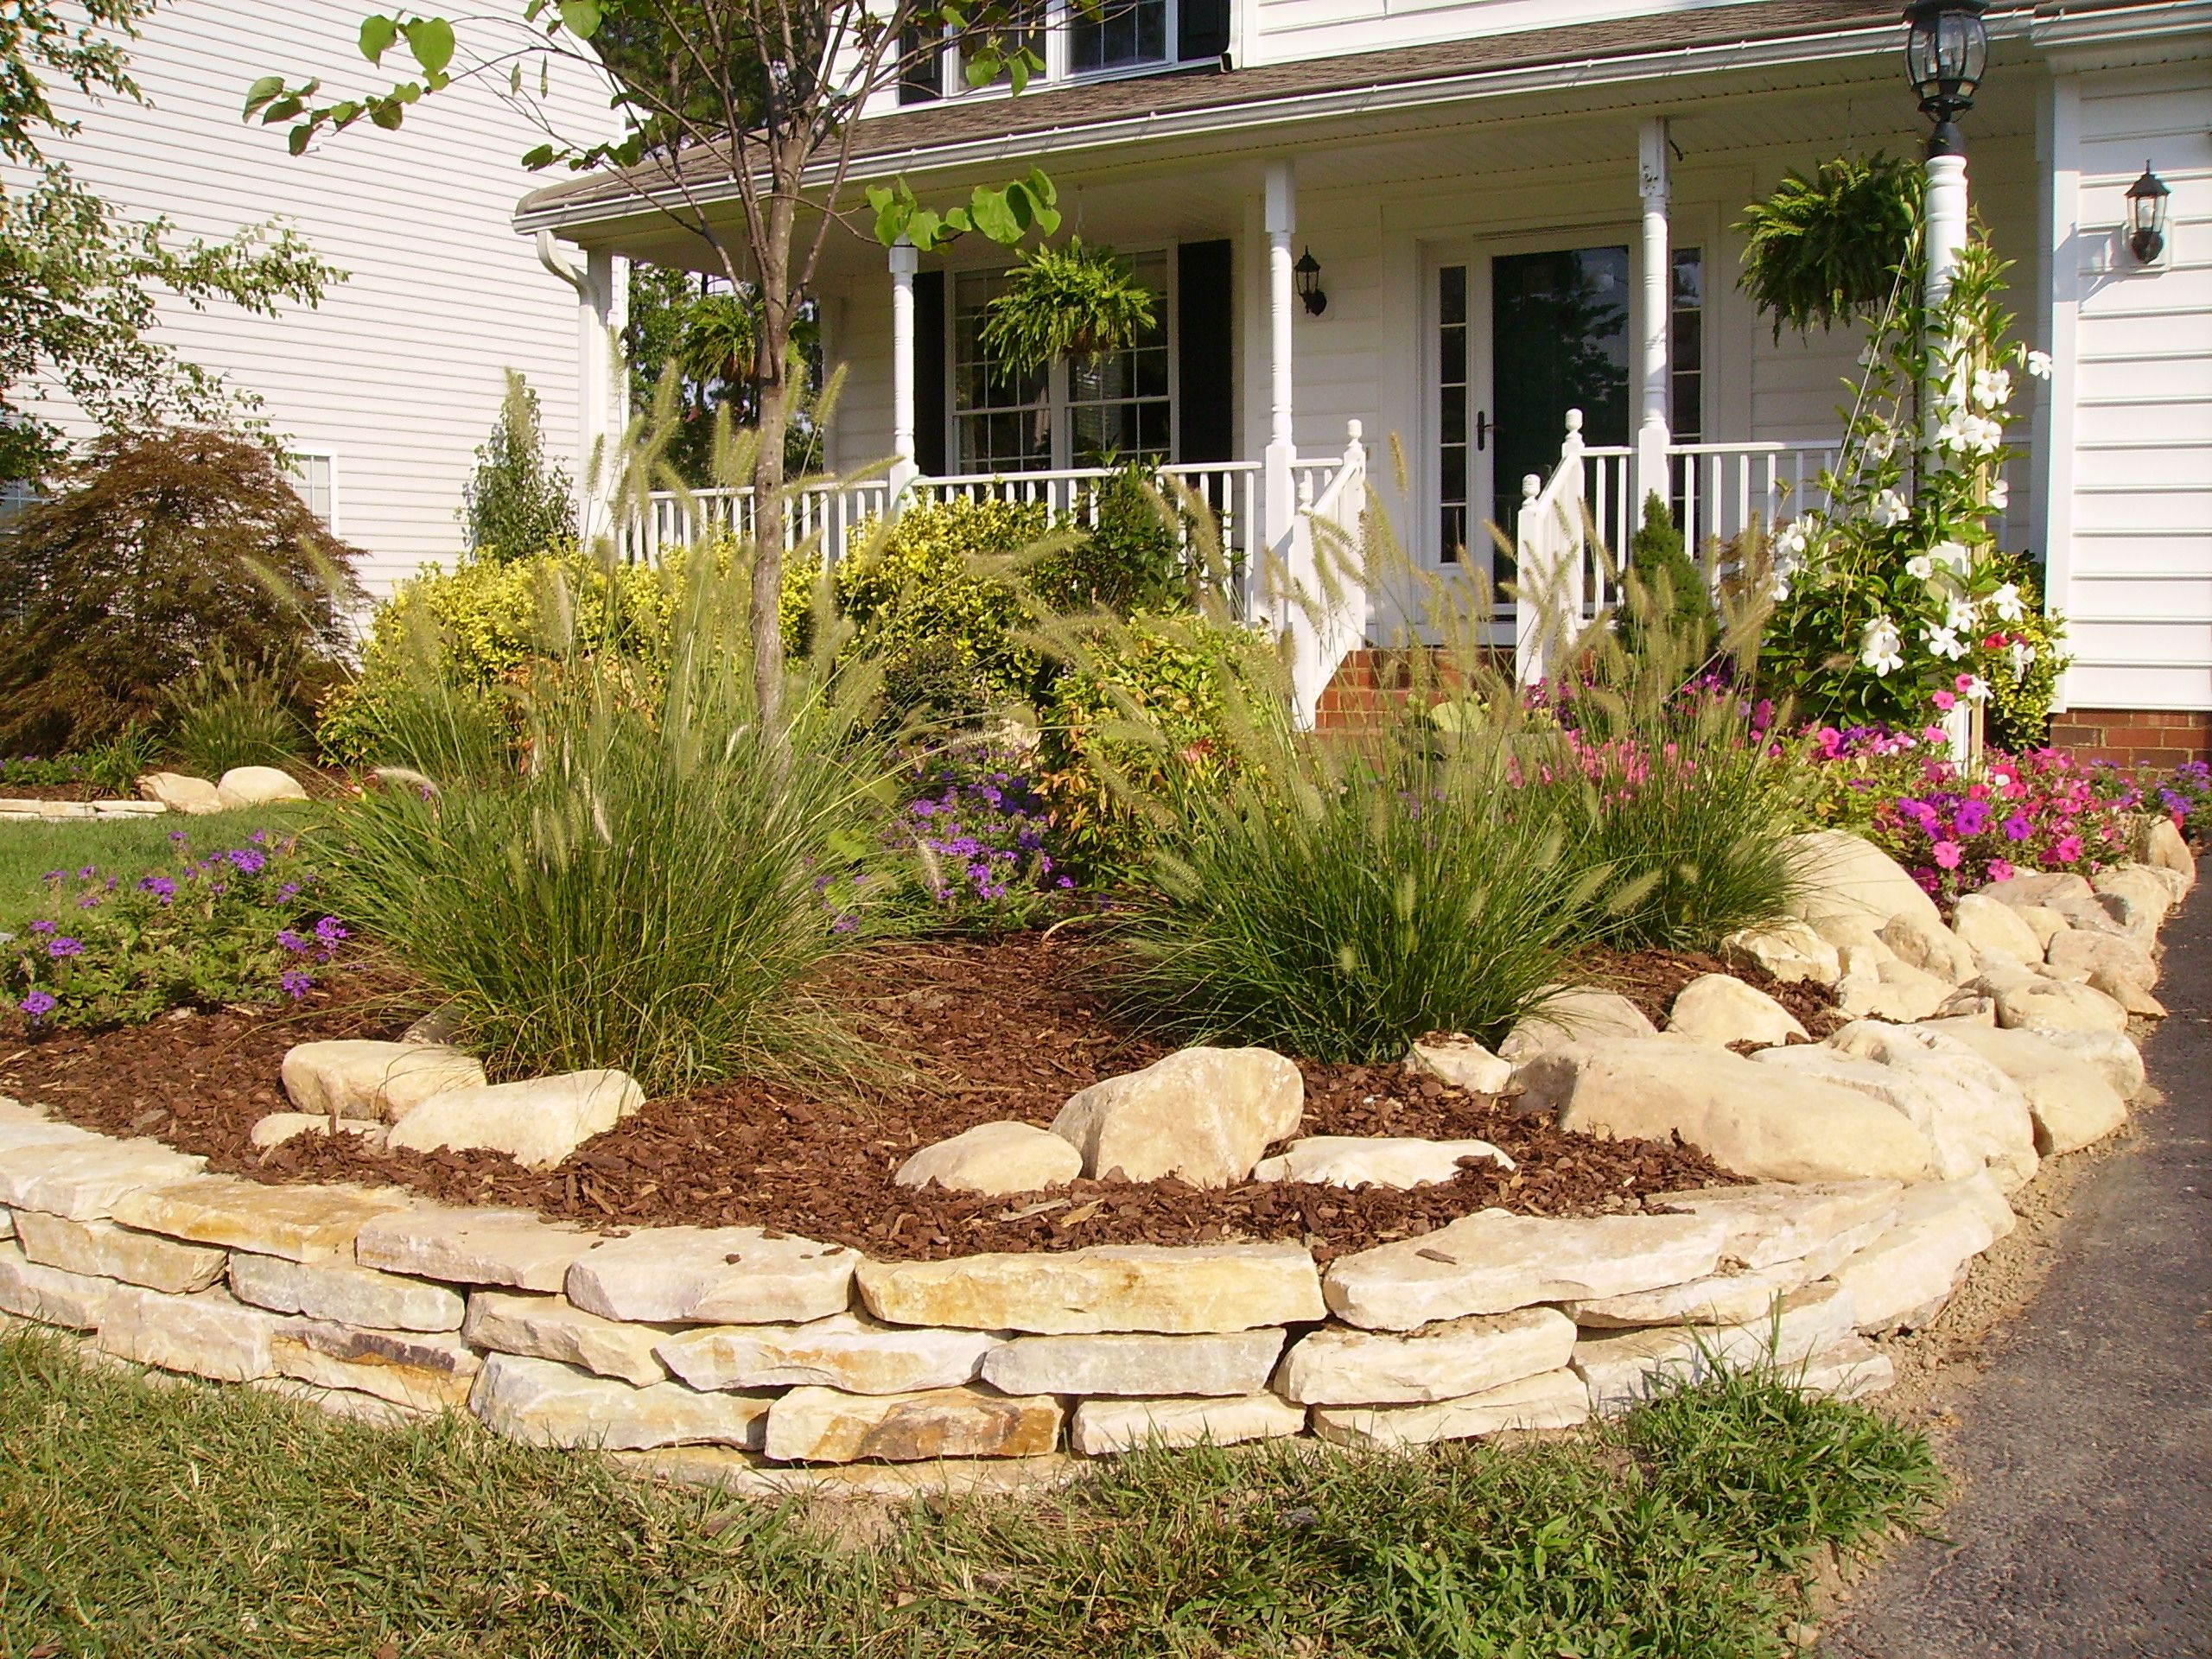 In this photo, the stacked stone is edging the flowerbed and ...